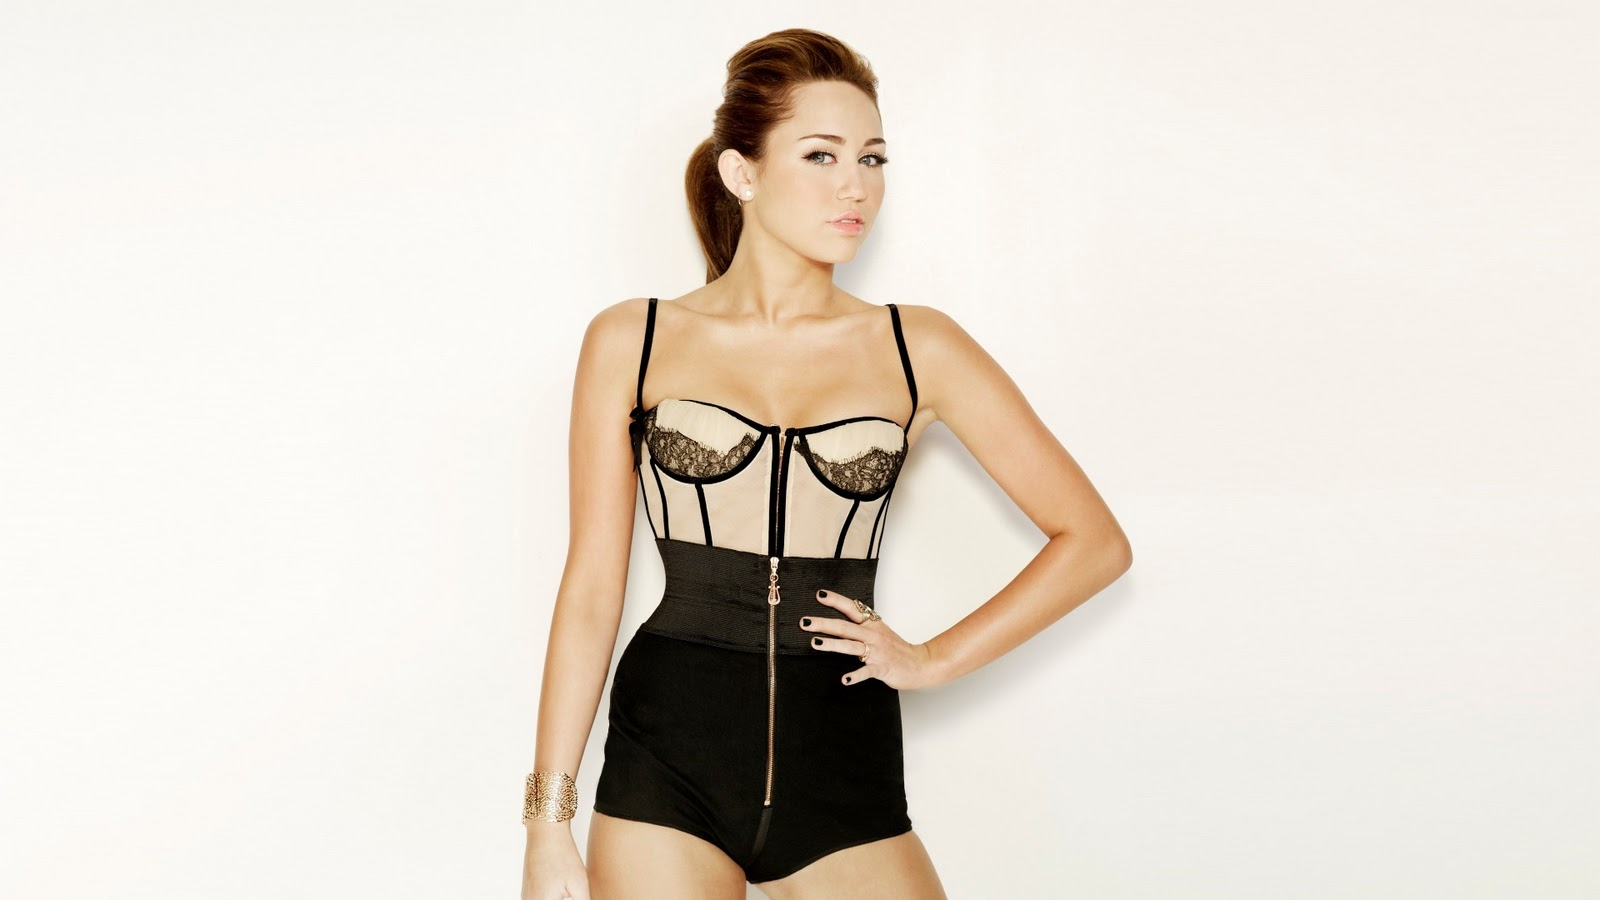 hd miley cyrus wallpapers - photo #24